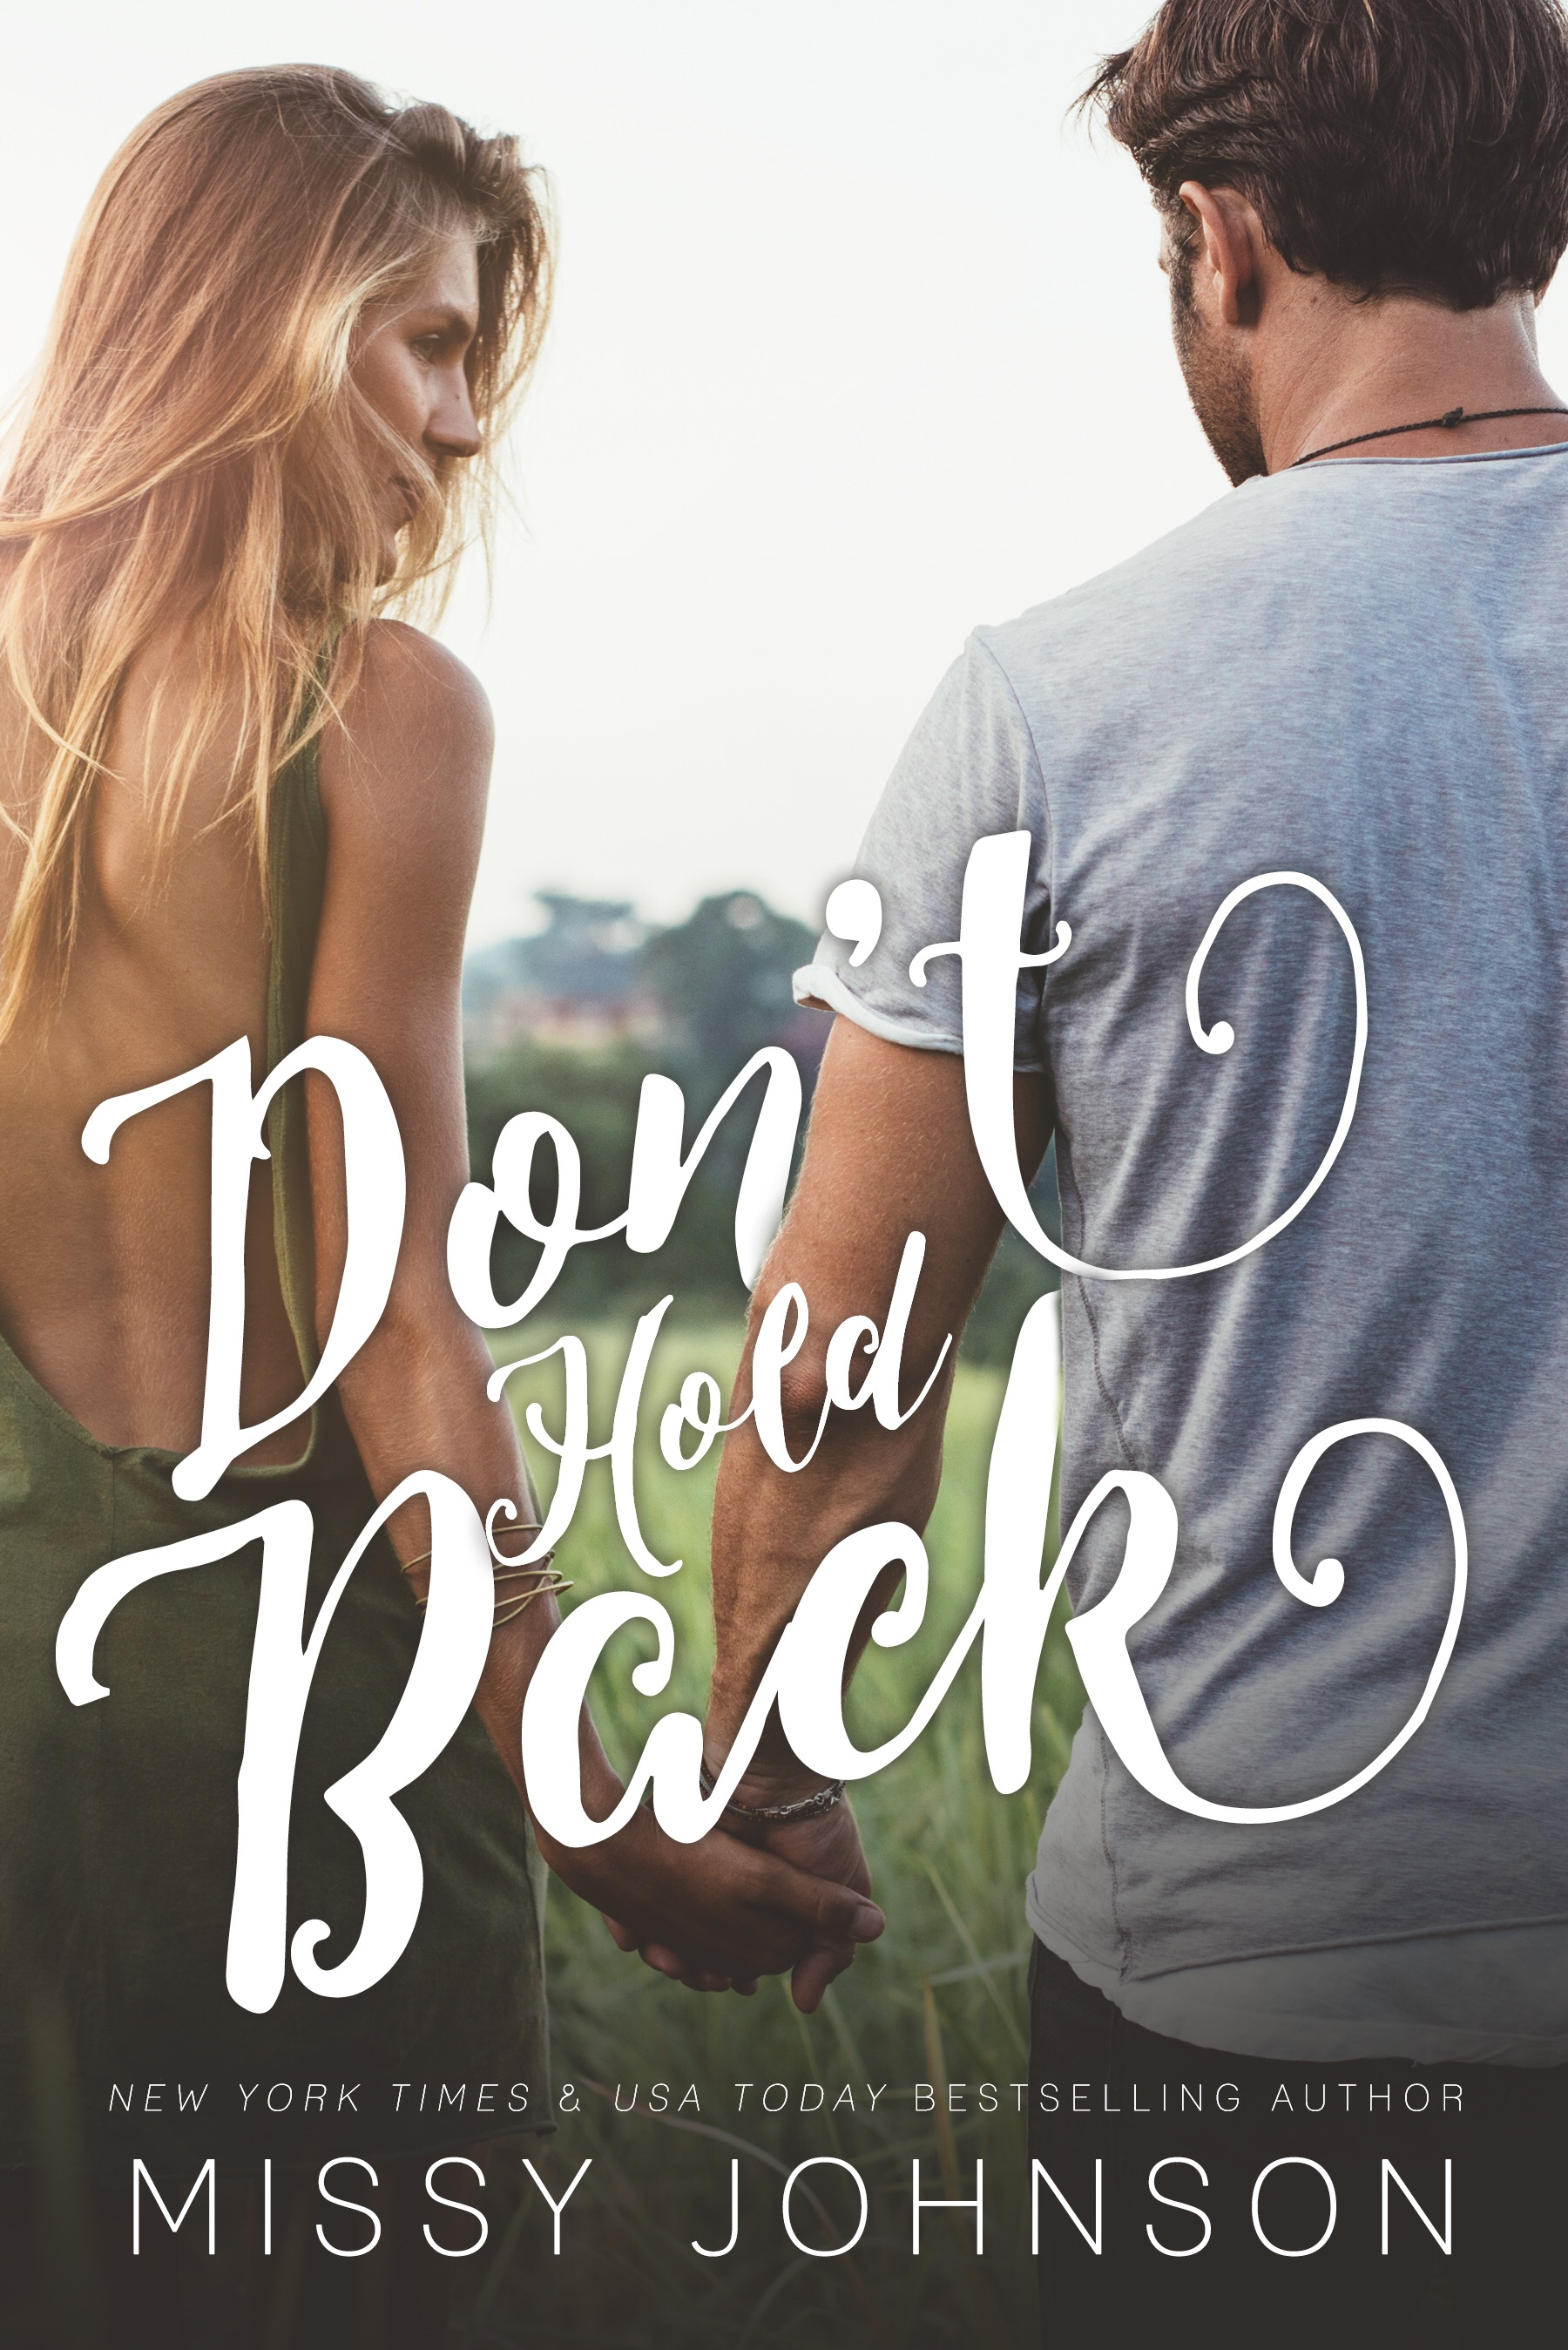 Don't Hold Back (Love Hurts Book 4) by Missy Johnson